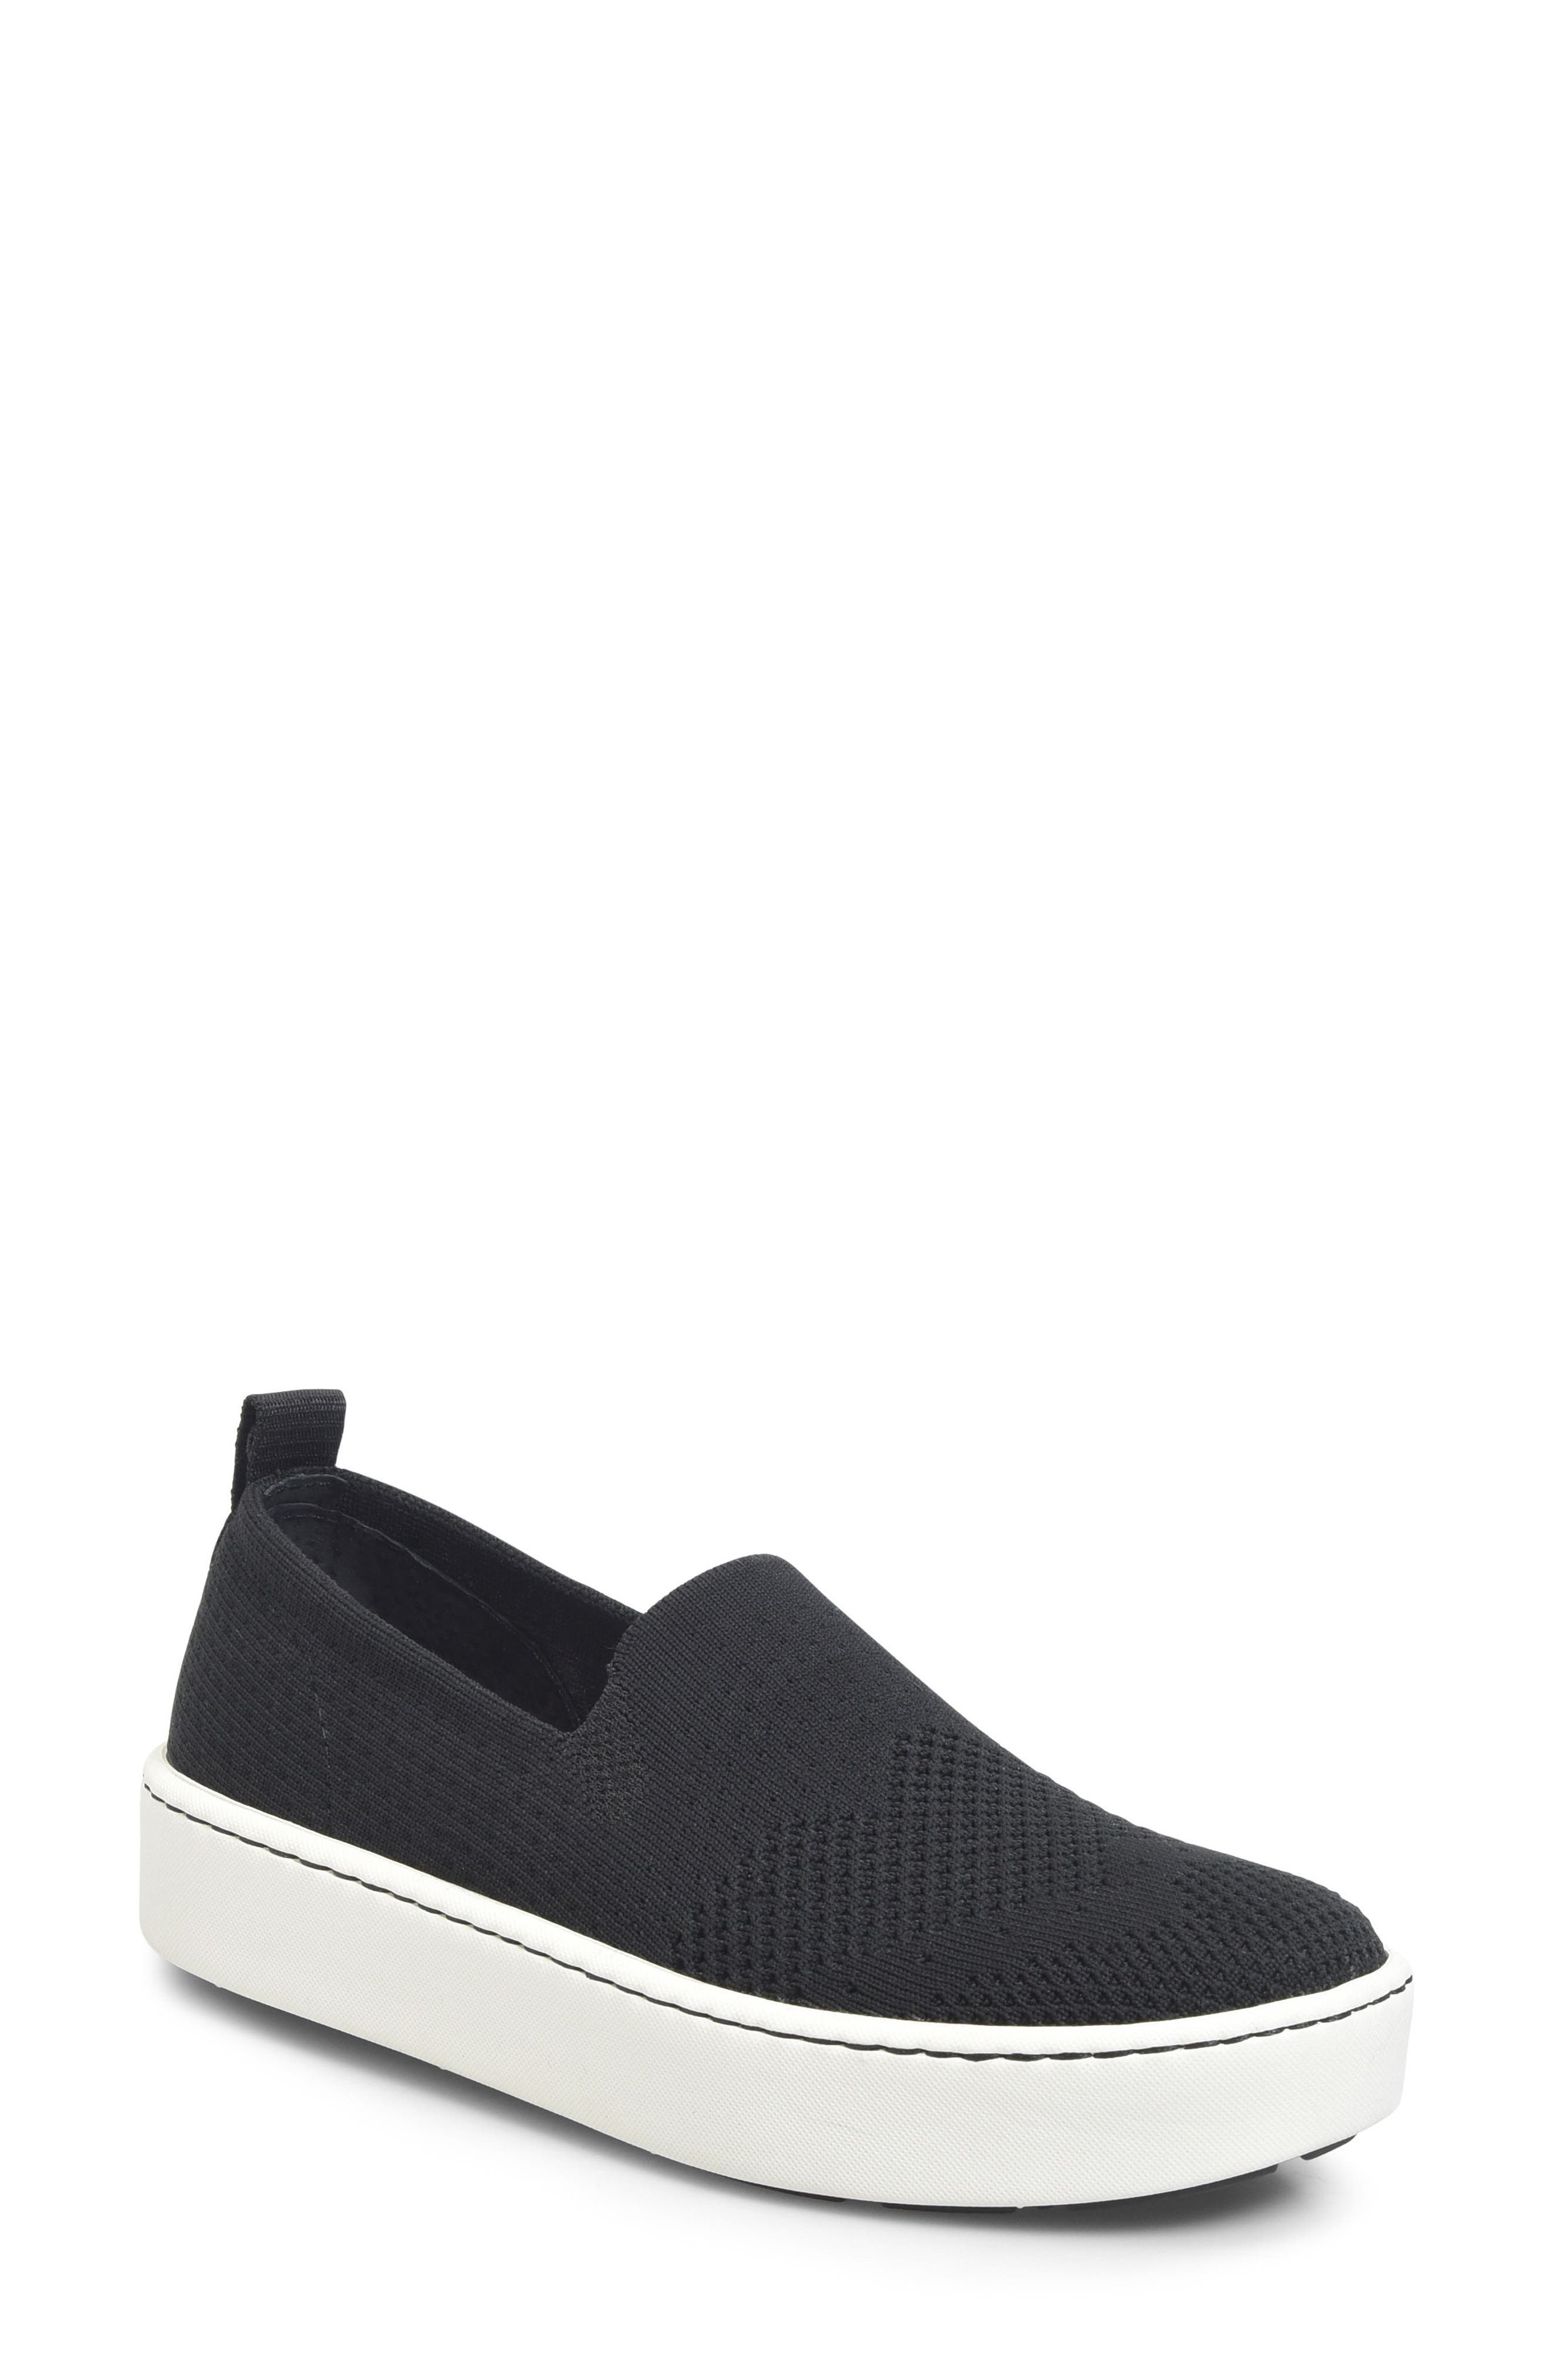 Sun Slip-On Sneaker,                         Main,                         color, BLACK FABRIC